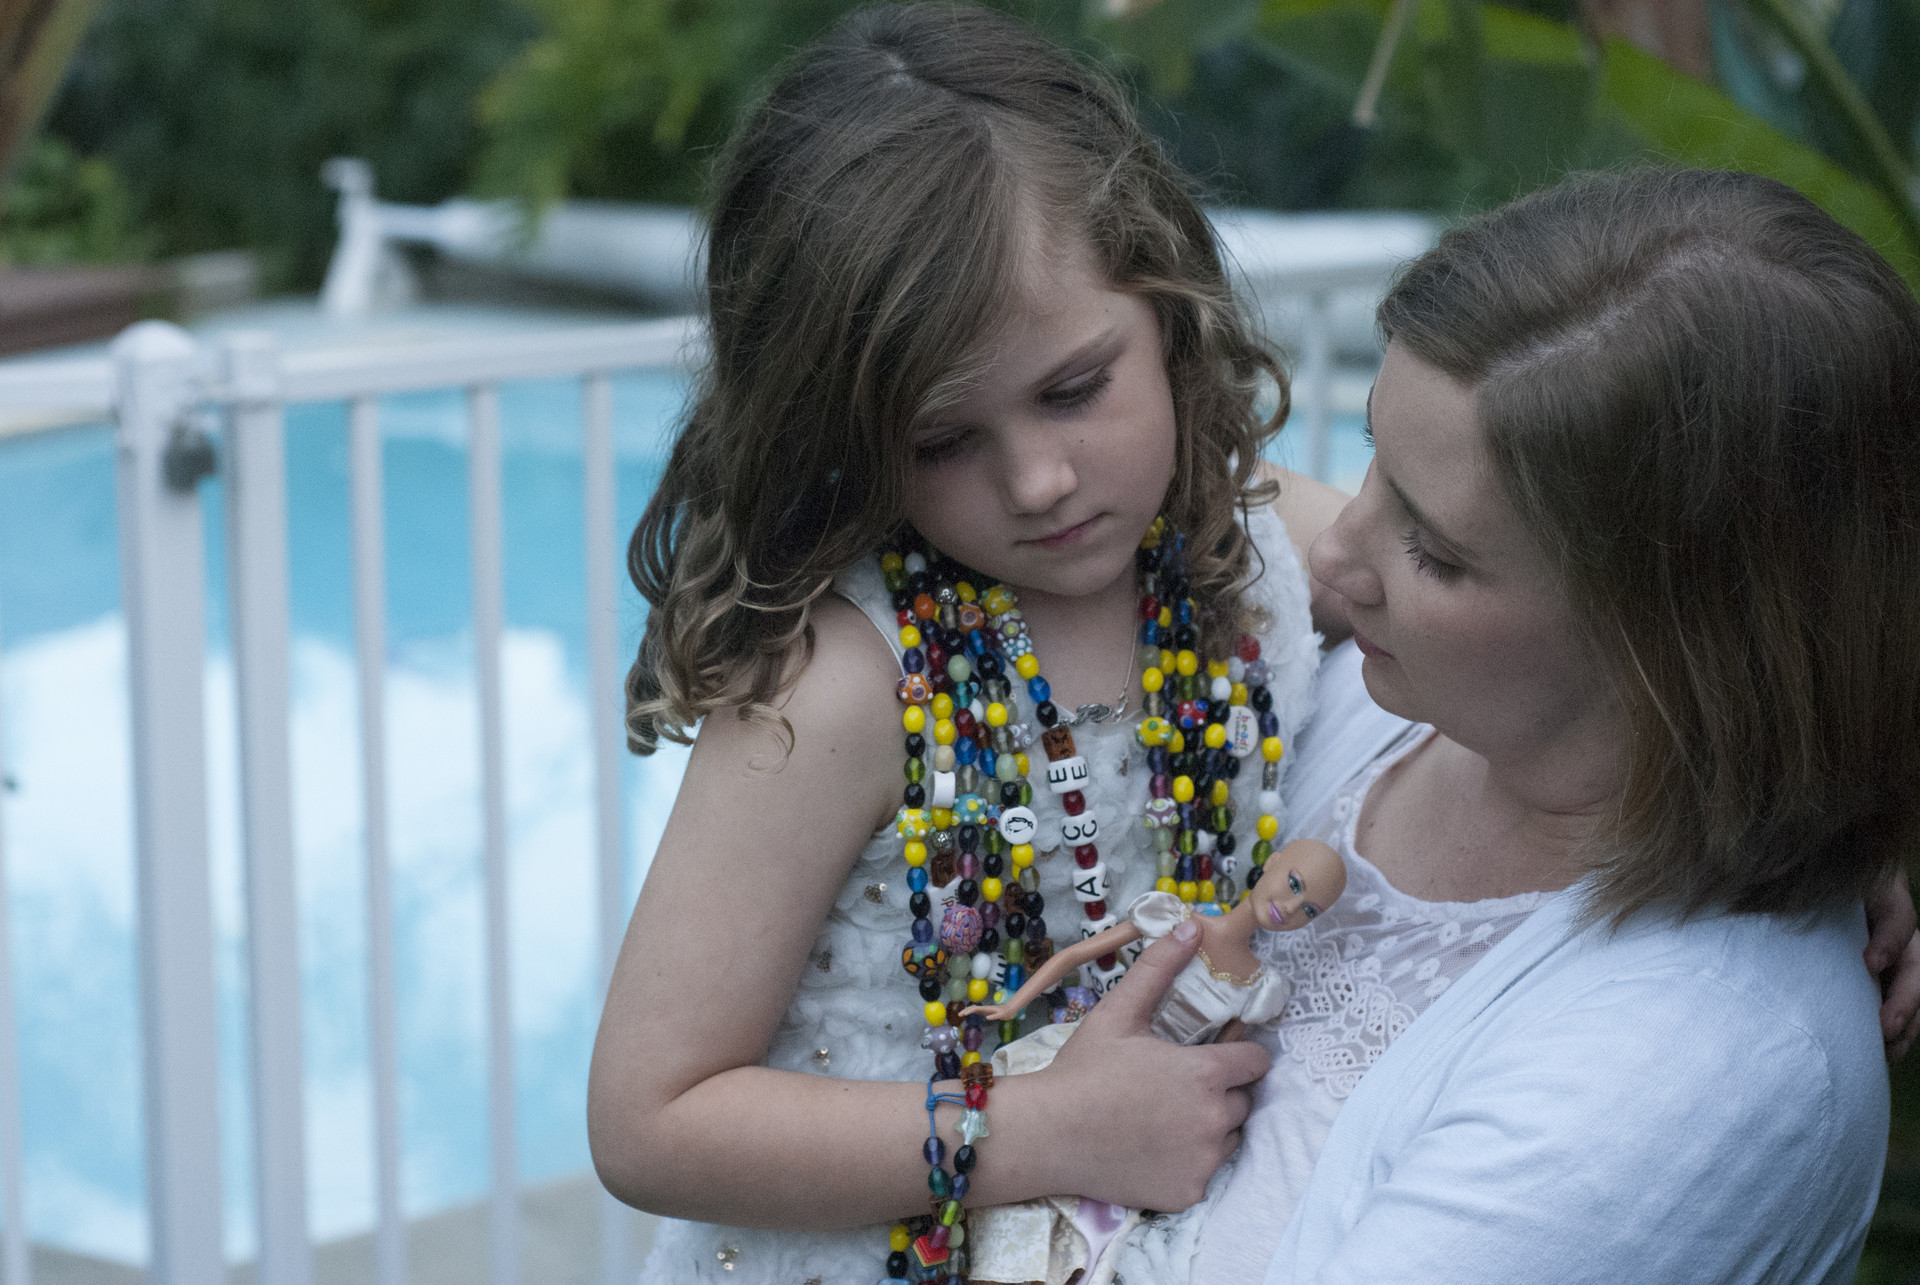 "Gracie Bumstead, 7, was diagnosed at age 4 with a rare form of leukemia. The necklace she wears is made of ""courage beads"" she received each time she completed a chemotherapy treatment. She's been cancer-free since January 2016. Gracie's mother Melissa, right, says neighborhood children have an unusually high cancer rate."